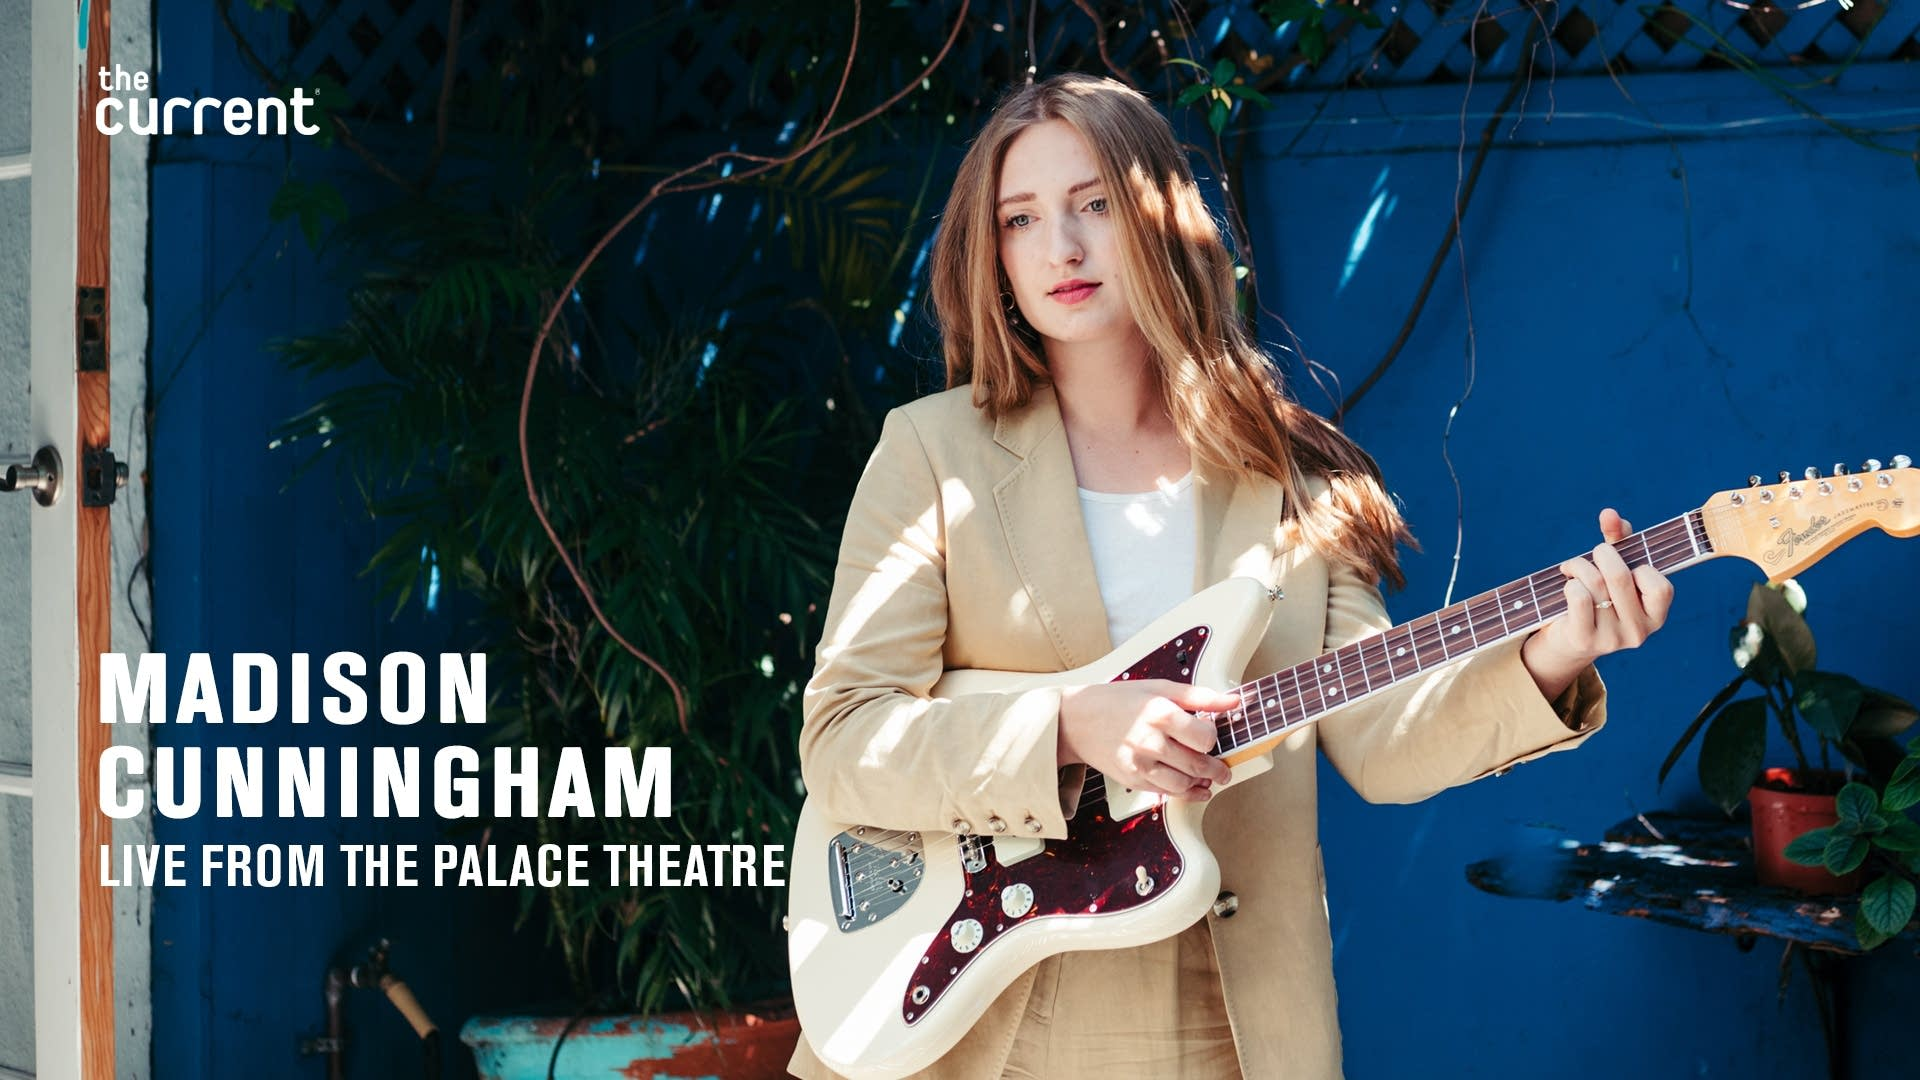 Madison Cunningham live from the Palace Theatre